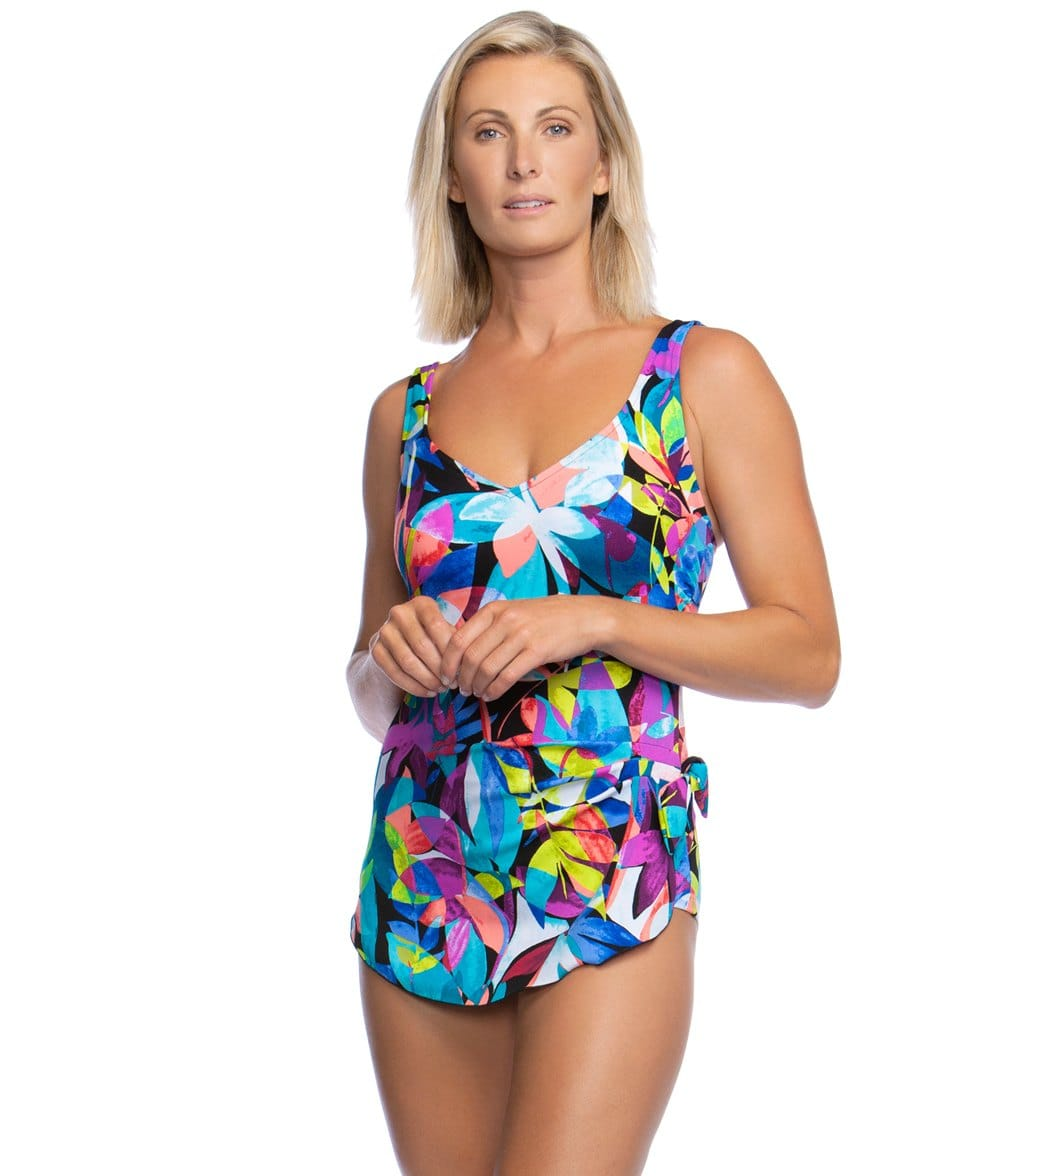 fda4ee2166724 Maxine Fiesta Chlorine Resistant Sarong One Piece Swimsuit at  SwimOutlet.com - Free Shipping